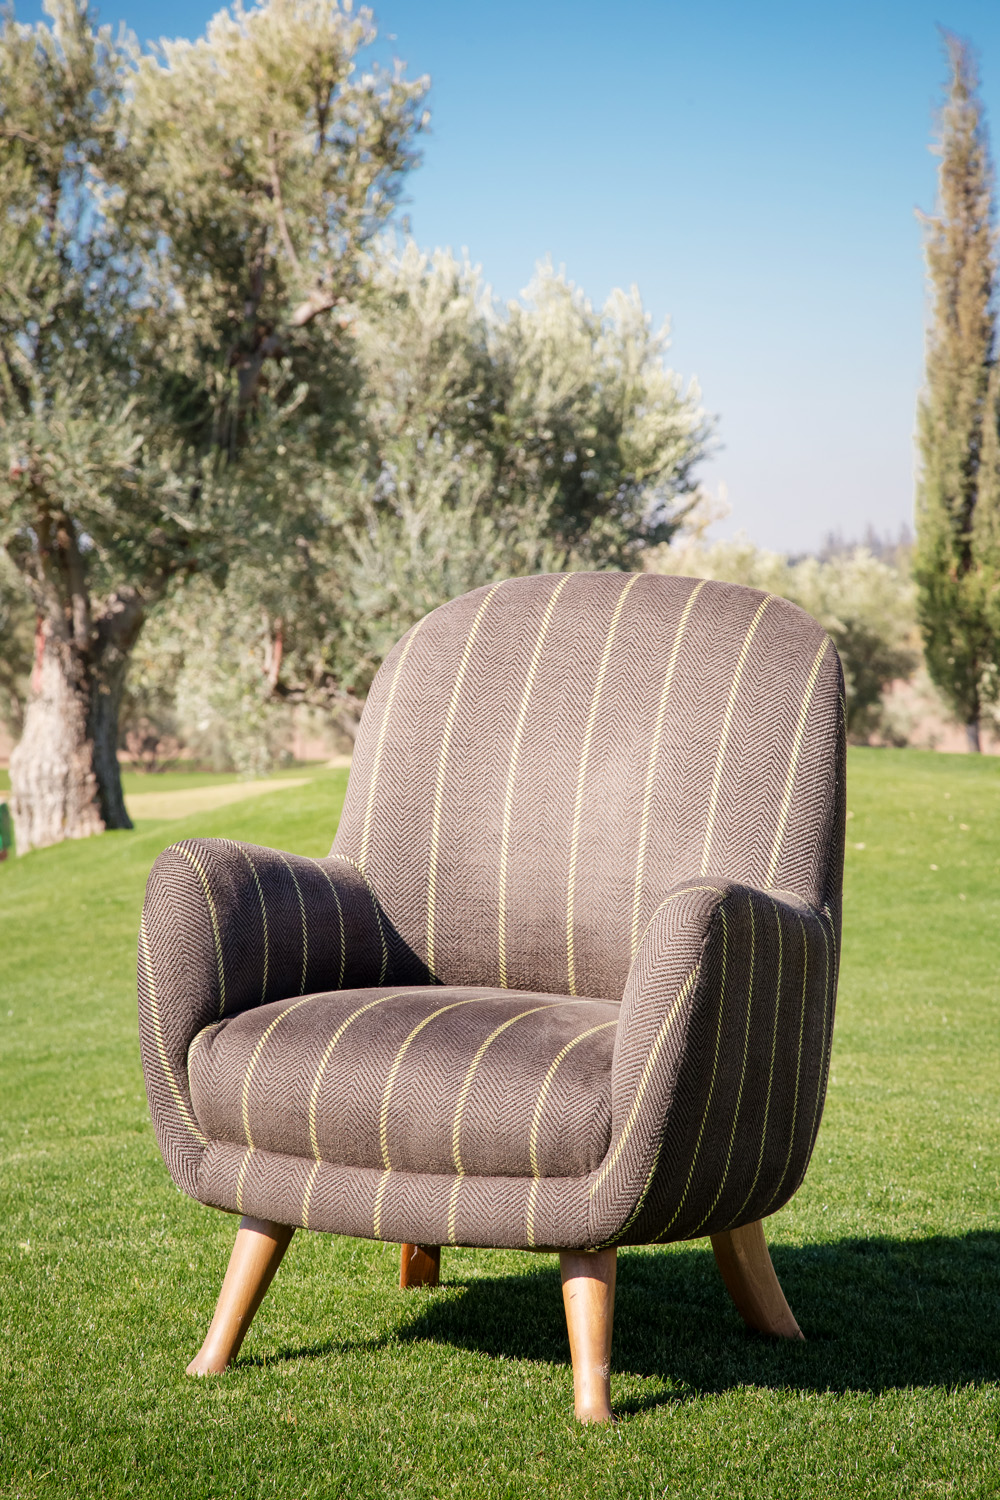 Fauteuil style 1950